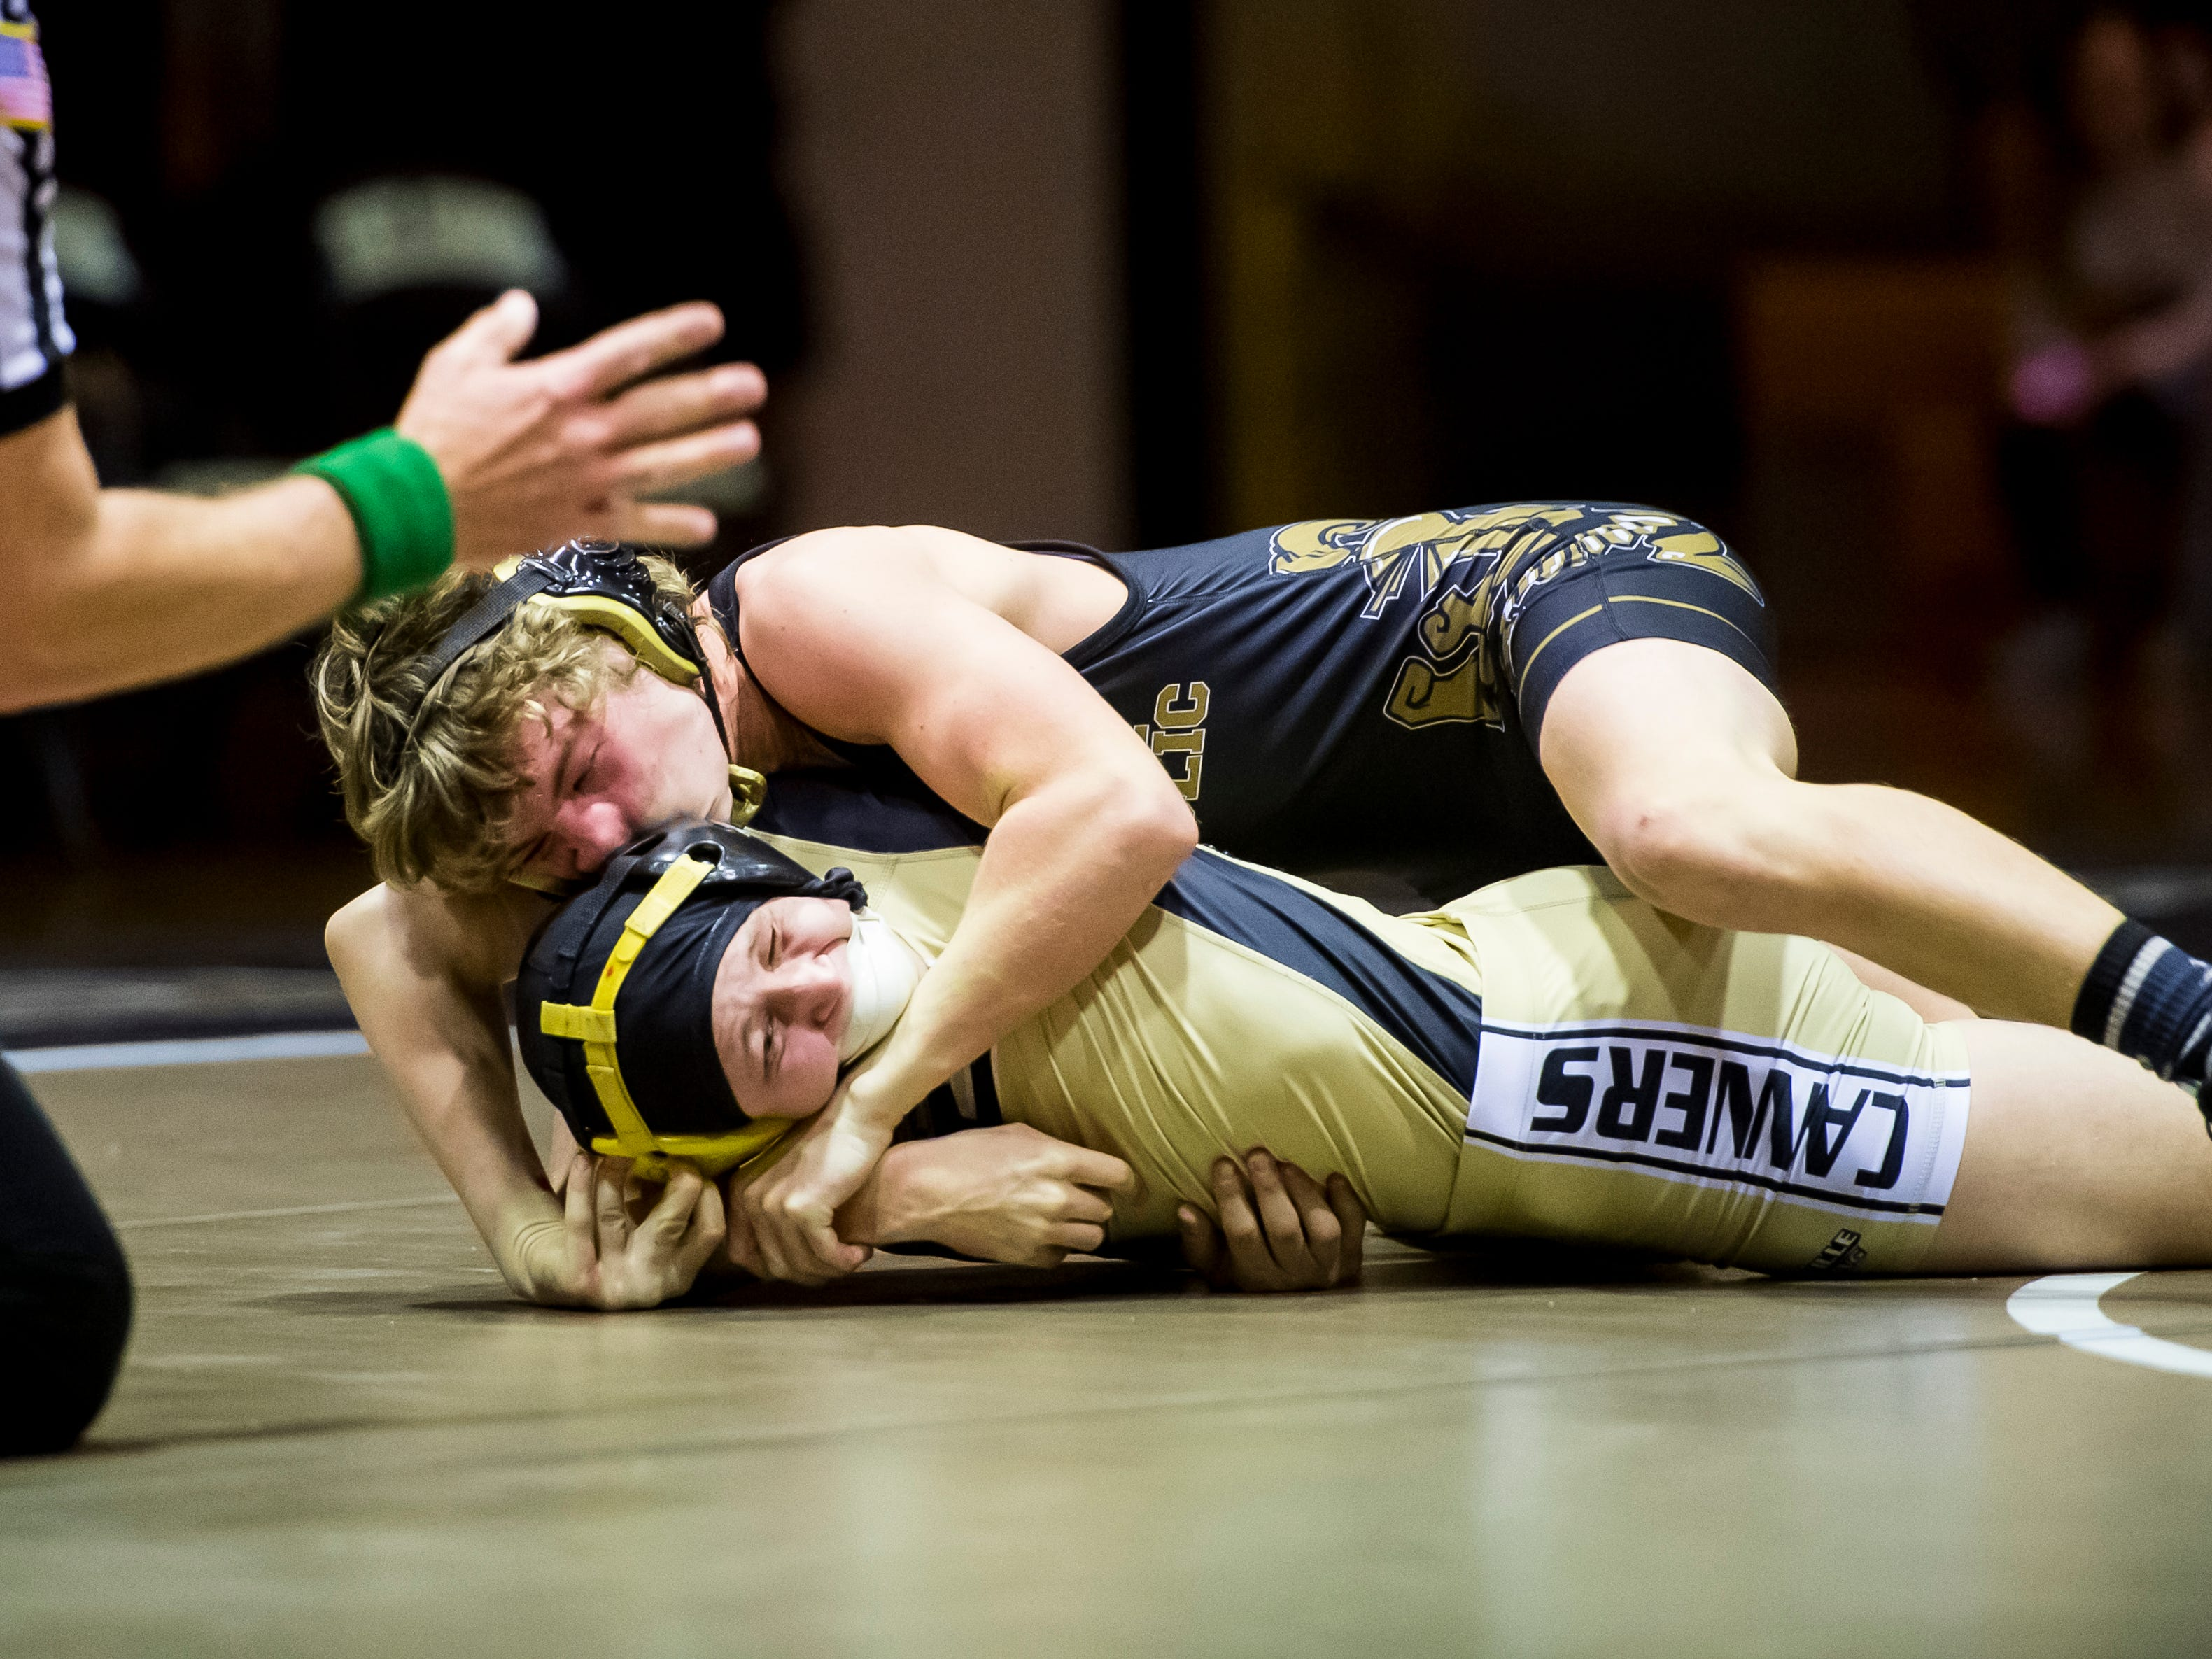 Delone Catholic's Nate Hart, top, wrestles Biglerville's Ethan Slaybaugh in the 113-pound bout at Delone Catholic High School on December 19, 2018. Slaybaugh won 7-4 and the Canners won the duel 51-21.